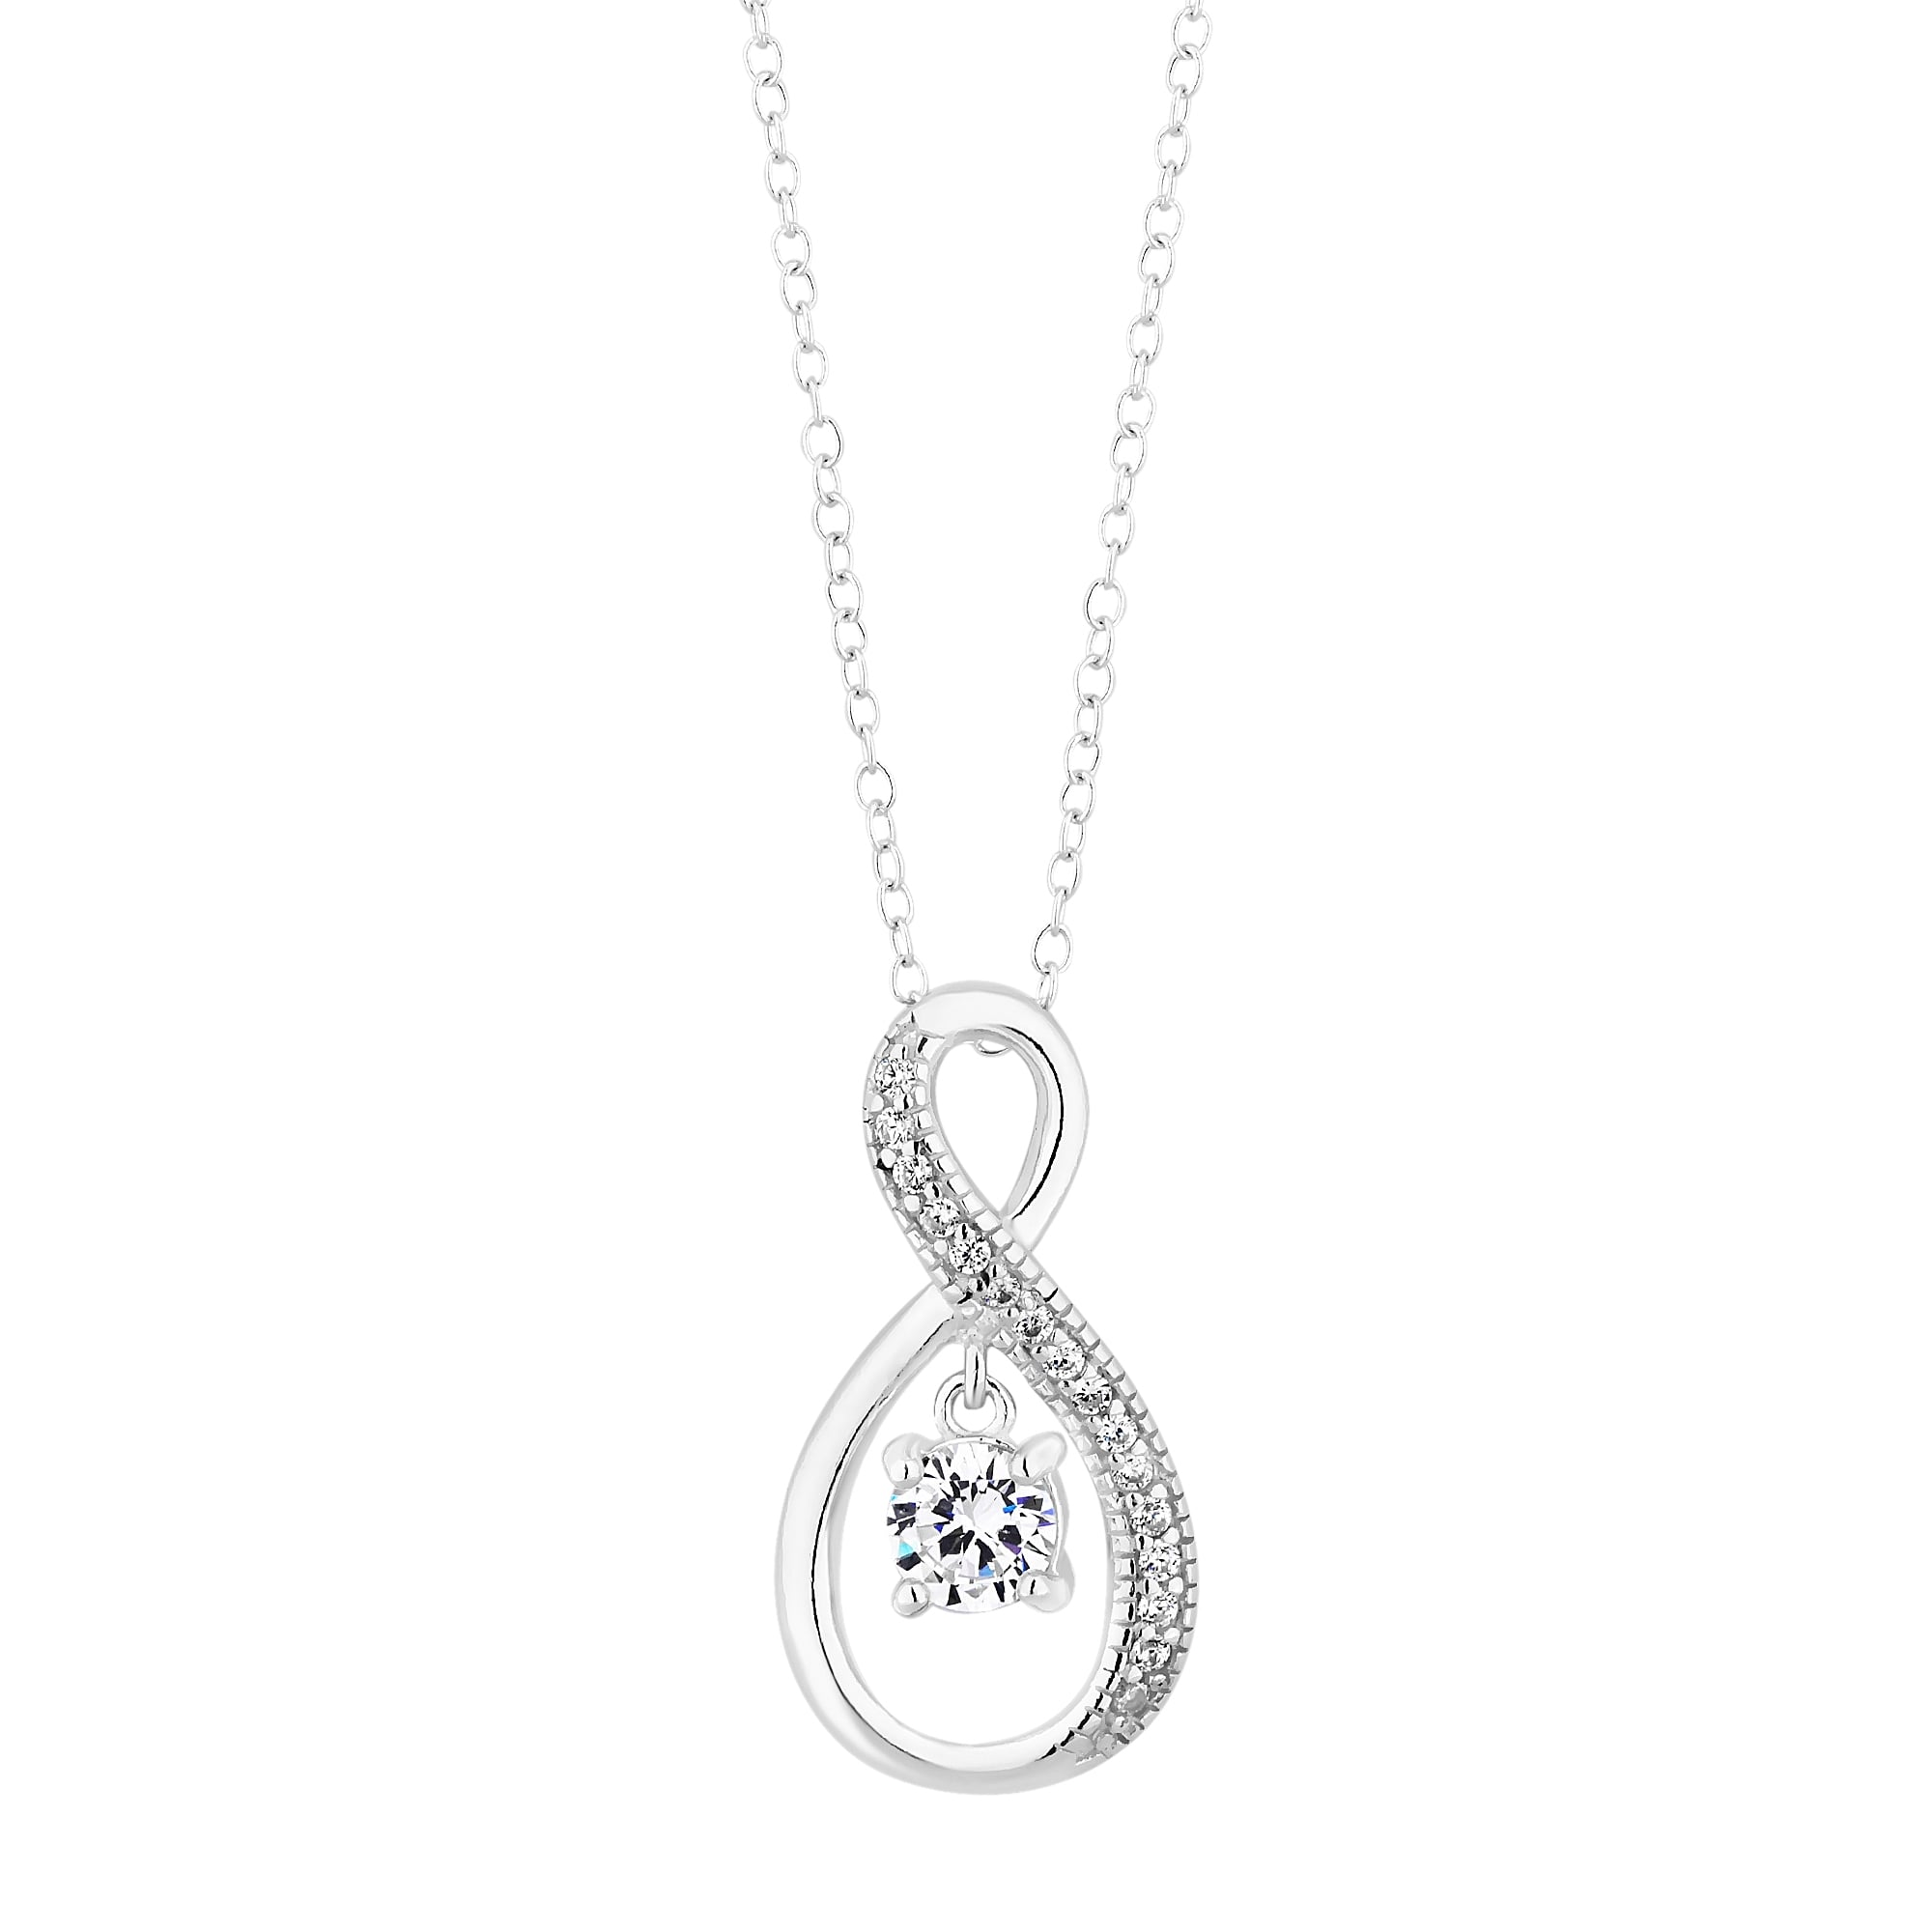 inch rose and pendant silver tone infinity pin cz white with heart necklace finish sterling fashion